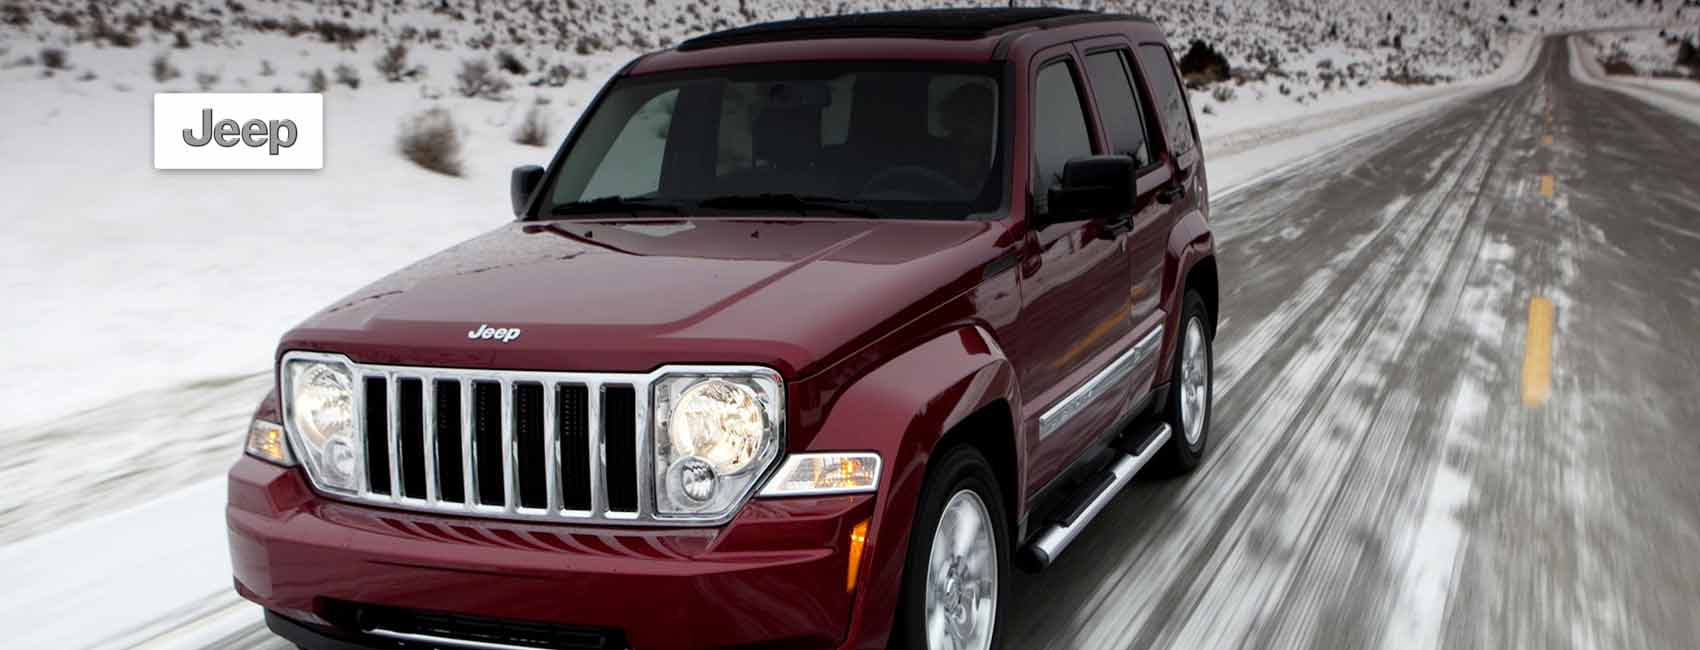 Jeep Liberty Parts - Buy Used Jeep Liberty Parts Online @ Best Price